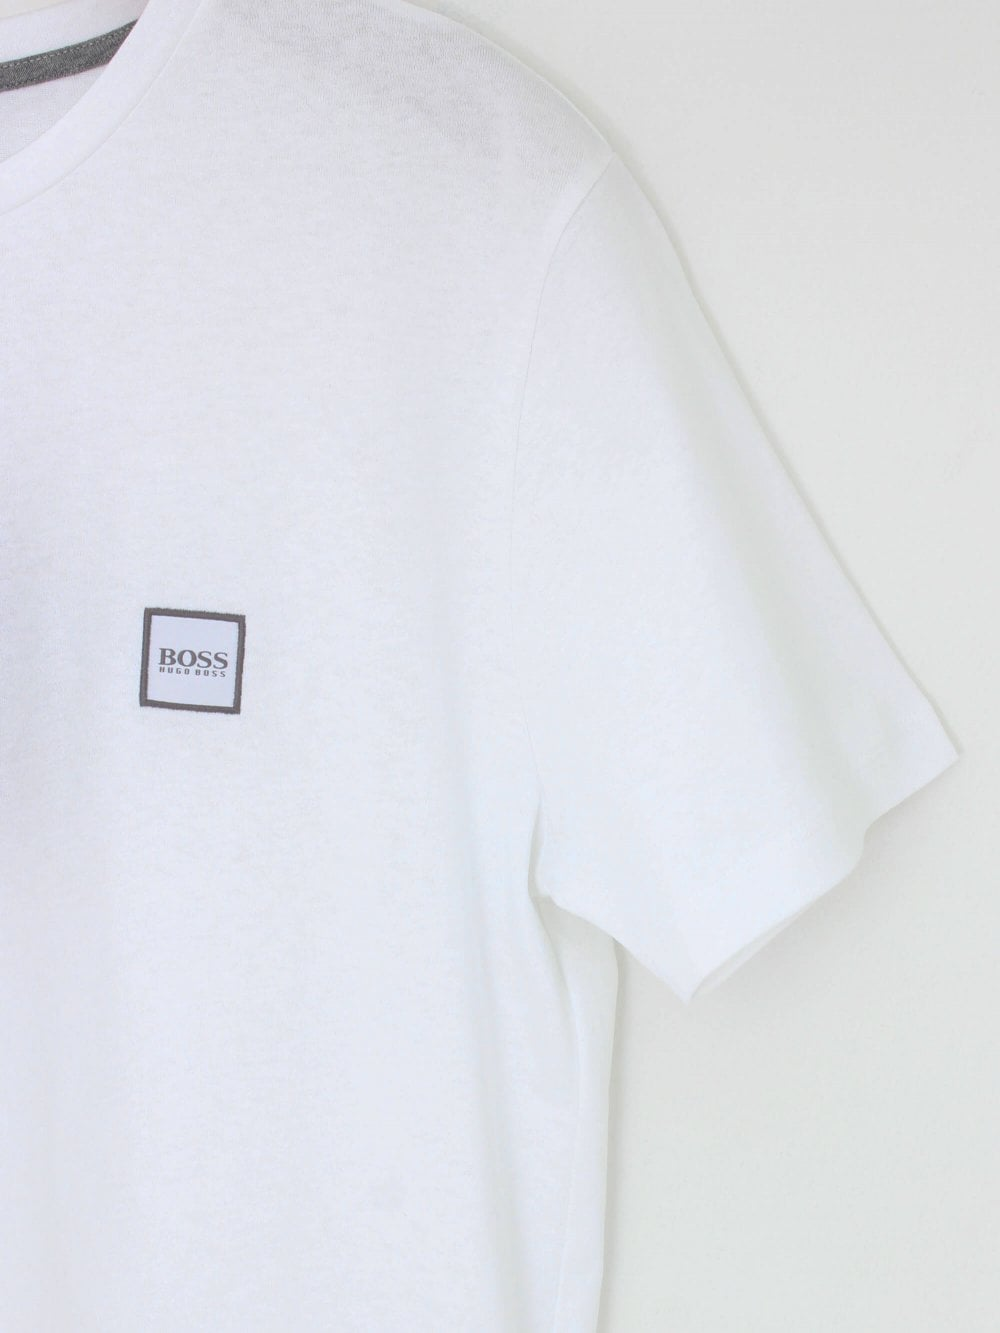 BOSS Tales T Shirt in White